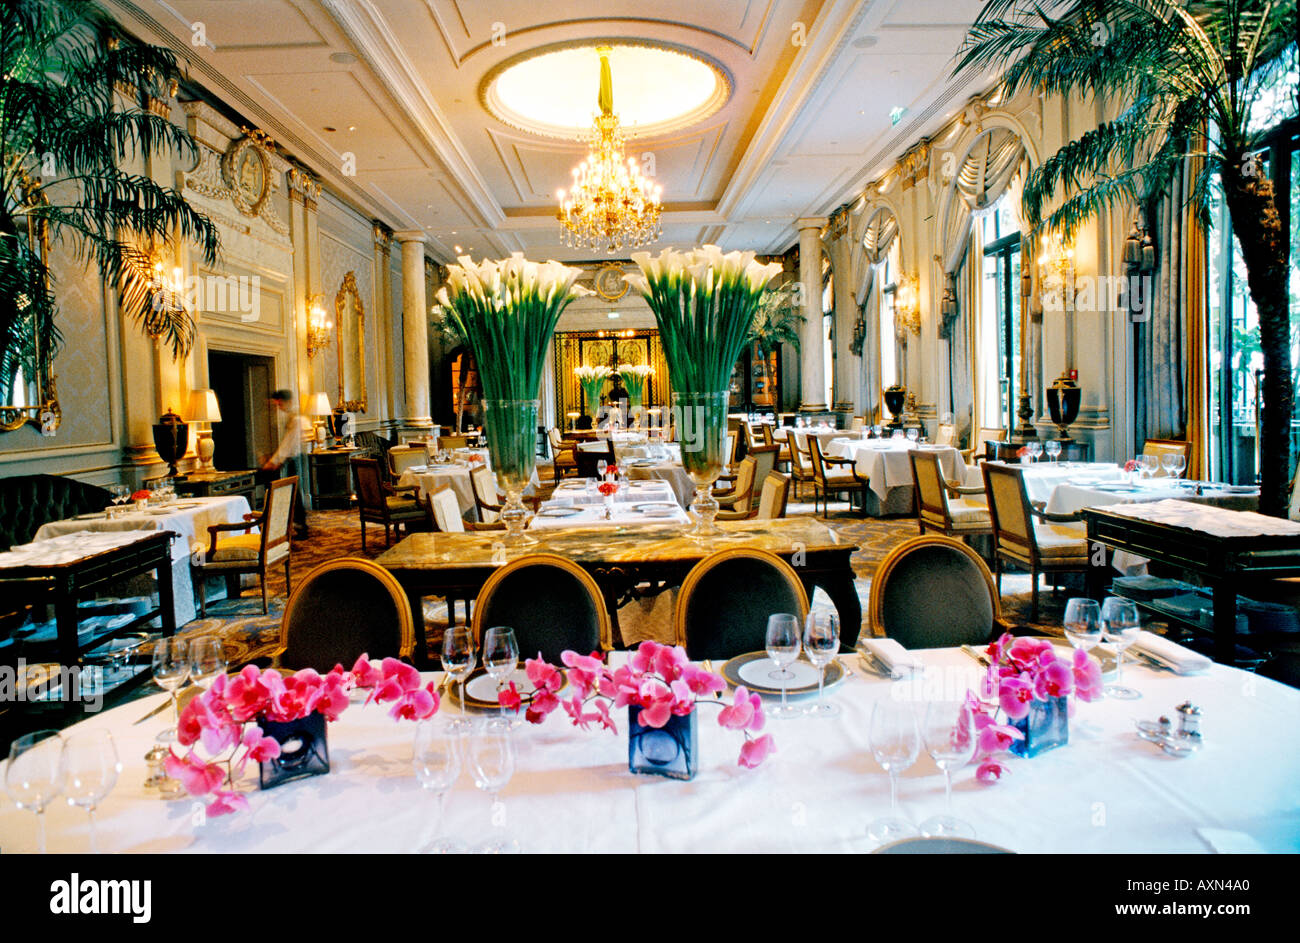 Paris france palace french restaurant le v le cinq for Restaurant cuisine francaise paris